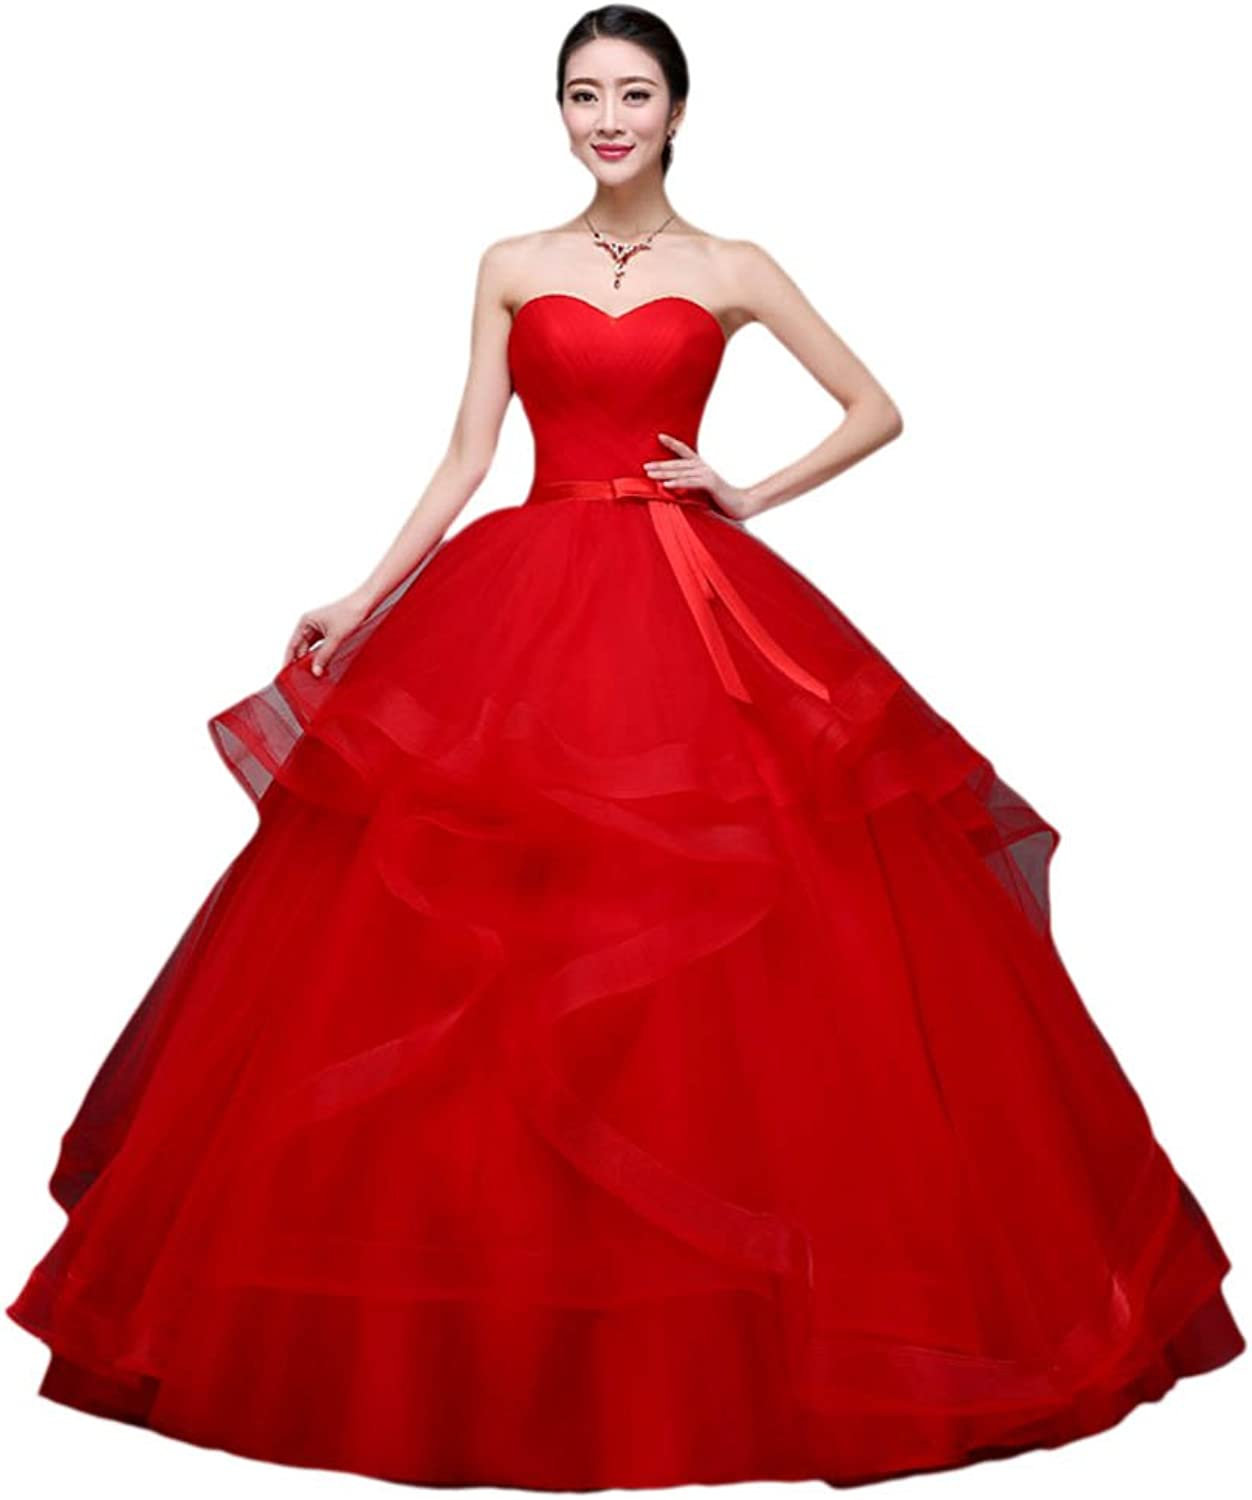 Vimans Women's 2016 Elegant Long Red Sweetheart Bowknot Formal Party Gowns